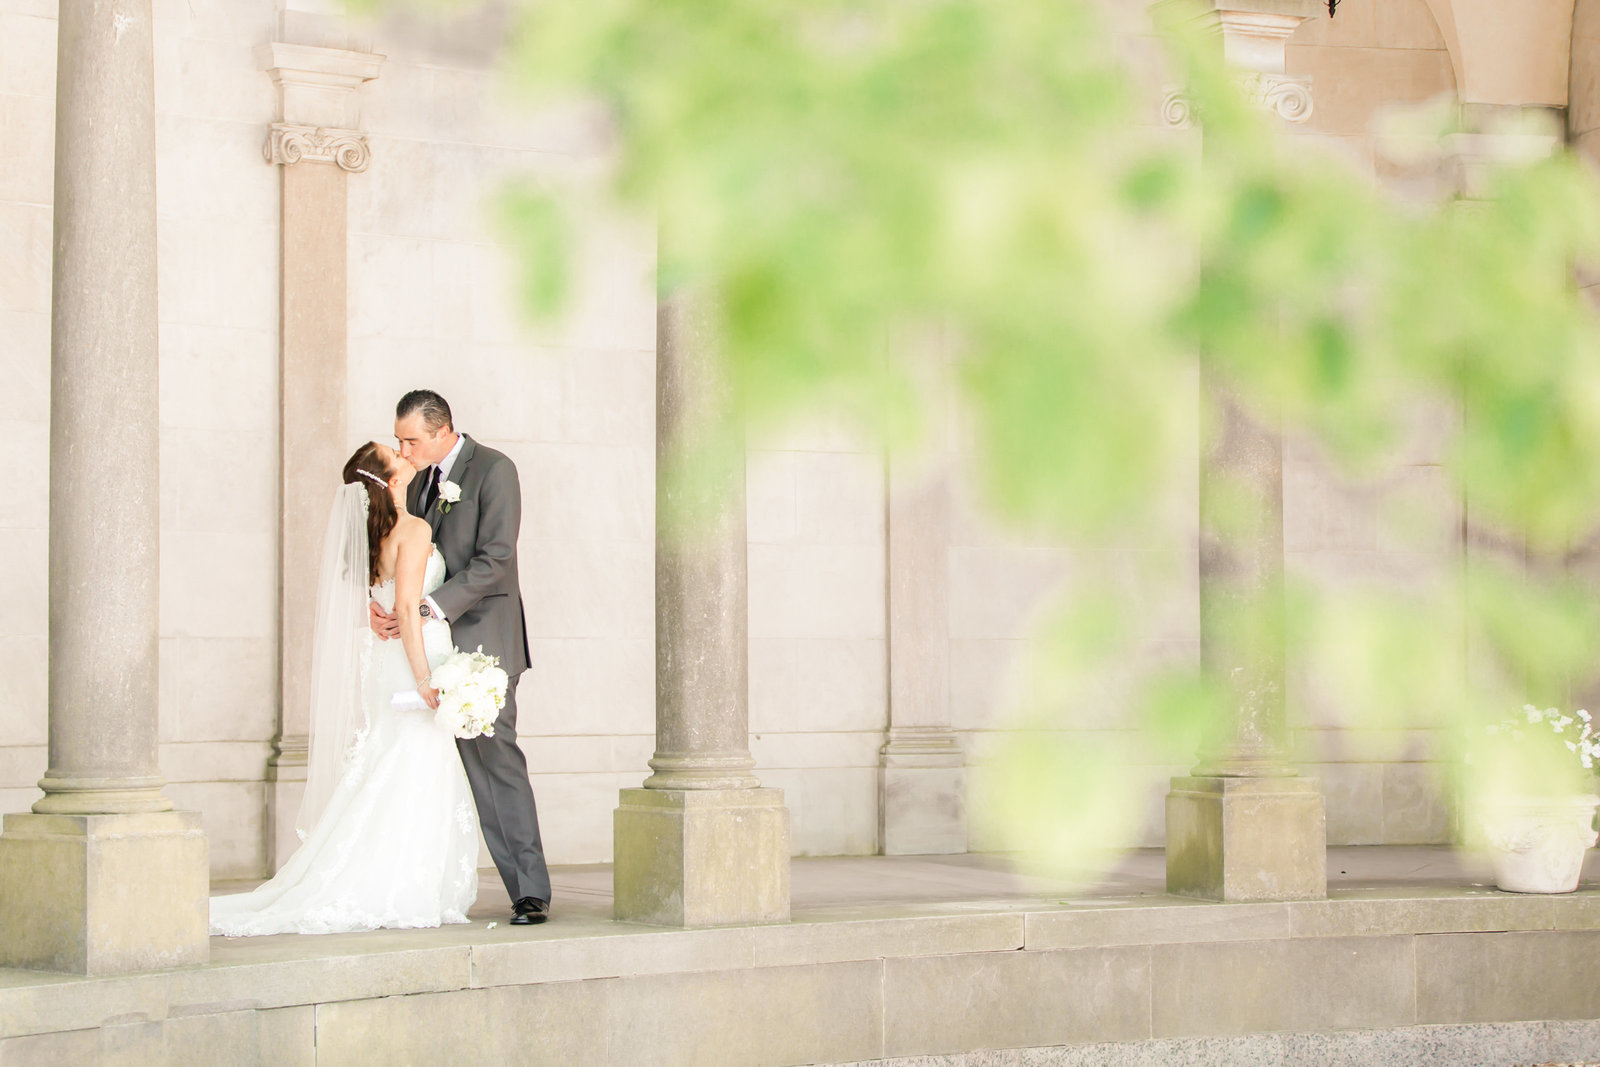 Romantic bride and groom photo at Monmouth University